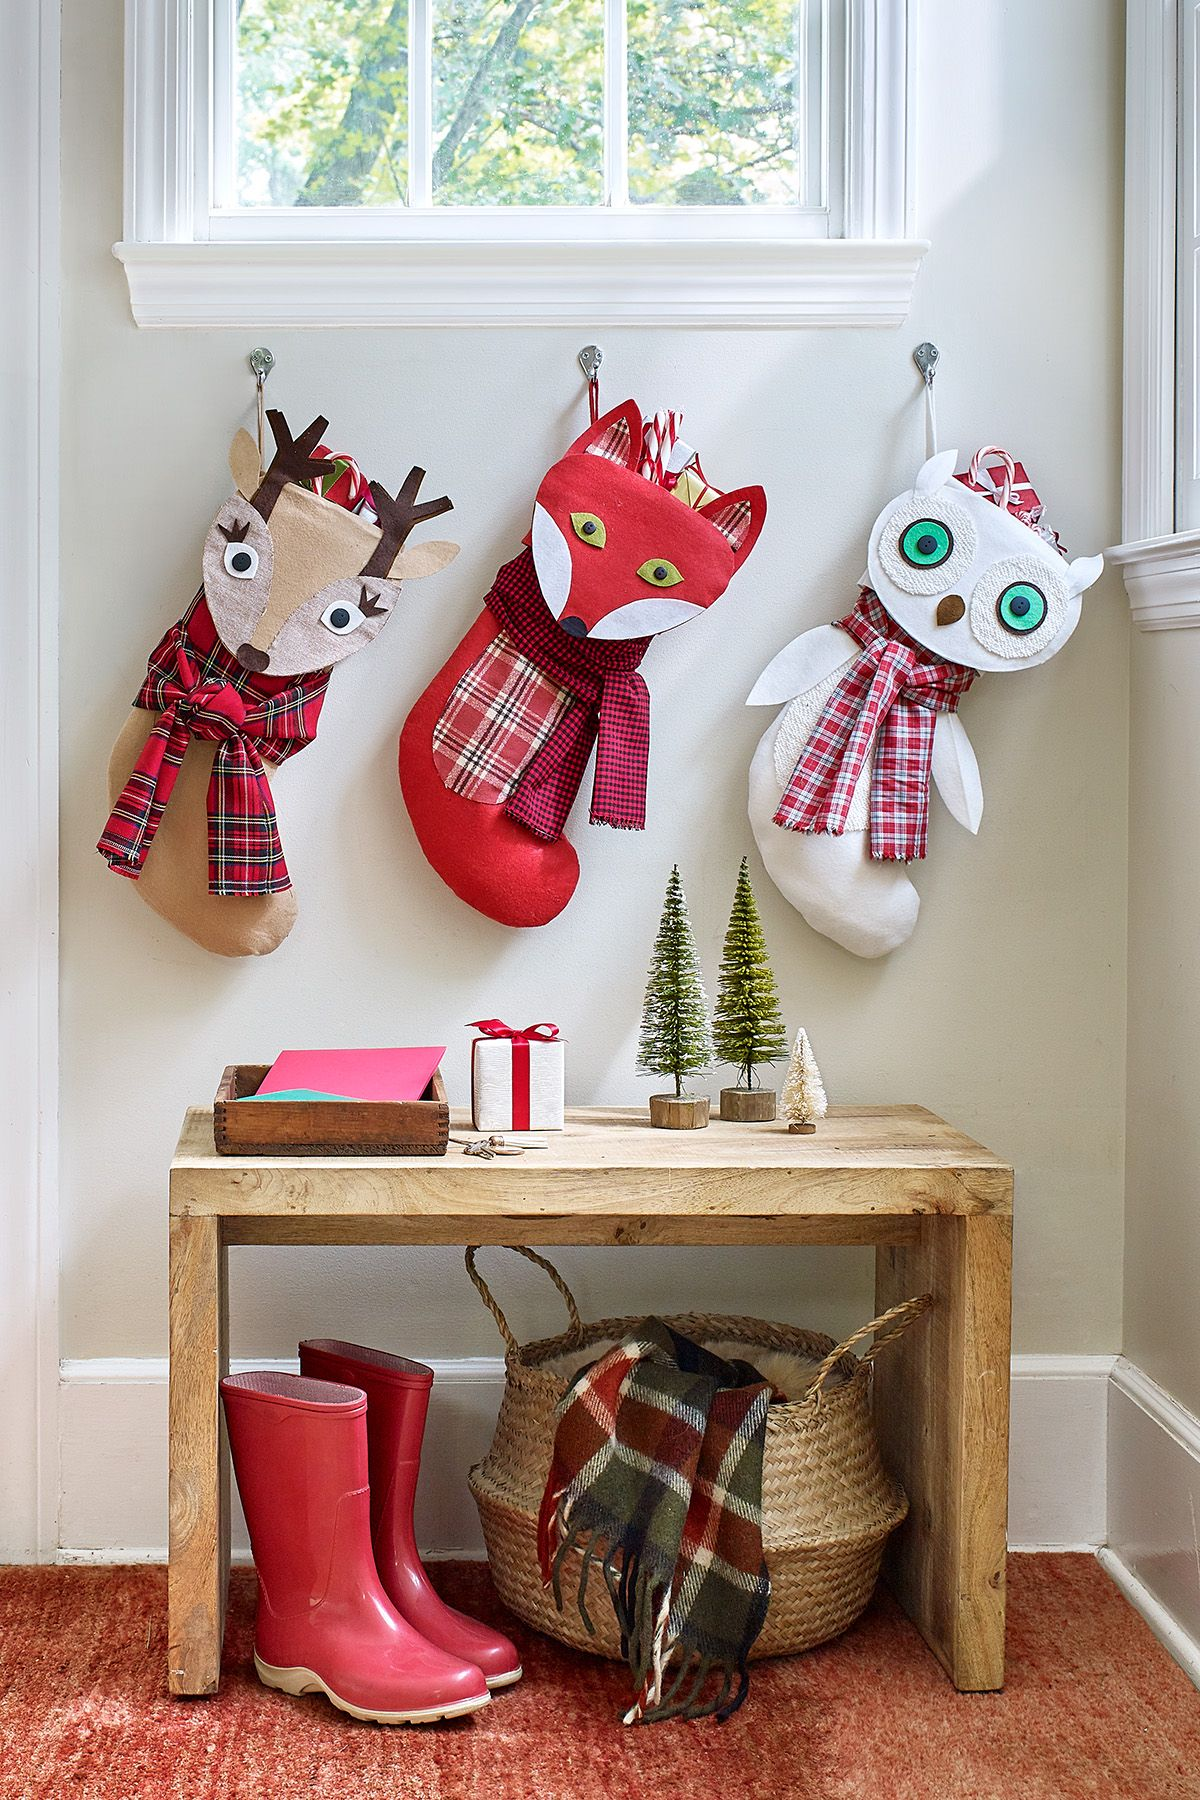 Christmas Crafts To Sell At Bazaar.40 Easy Christmas Crafts Simple Diy Holiday Craft Ideas